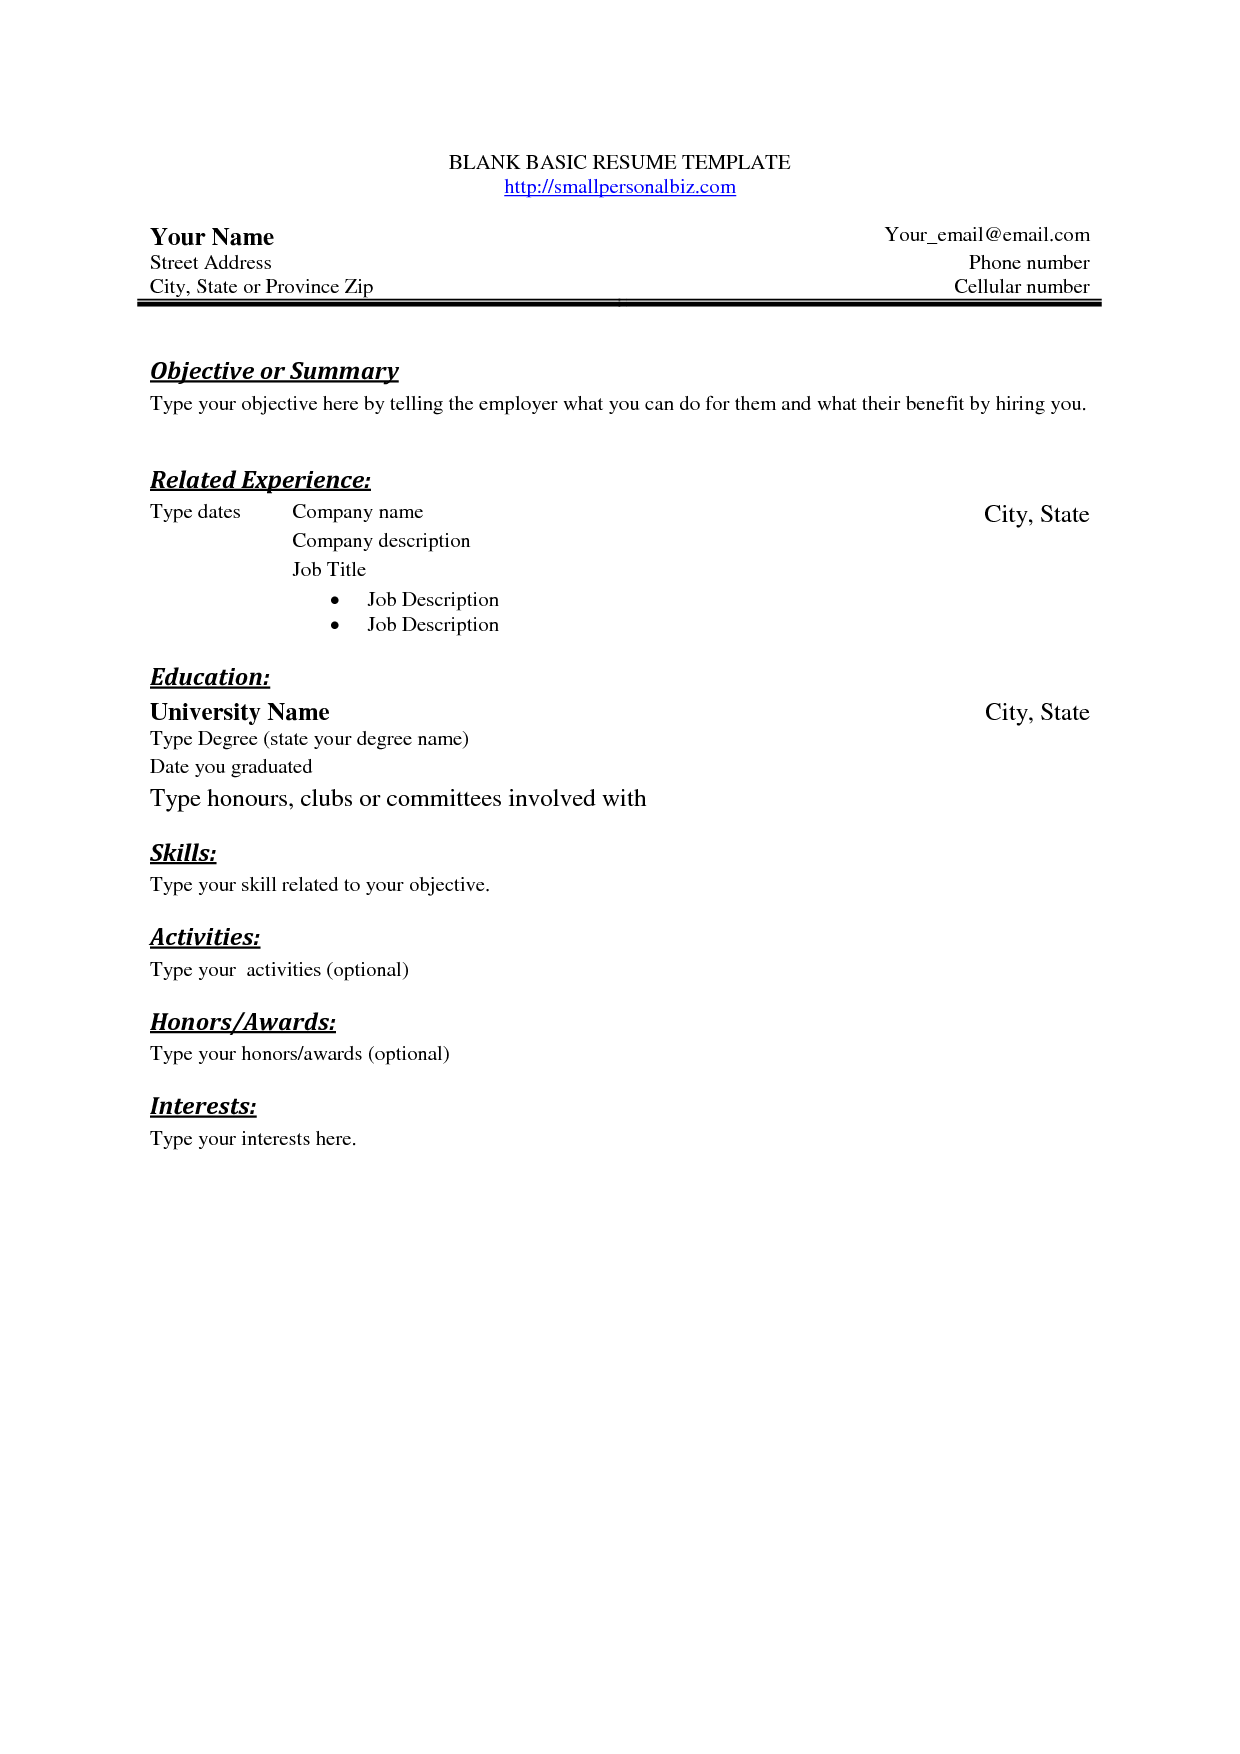 Stylist And Luxury Simple Resume Layout 10 Free Basic Blank Resume Template    Resume Example  Blank Resume Templates